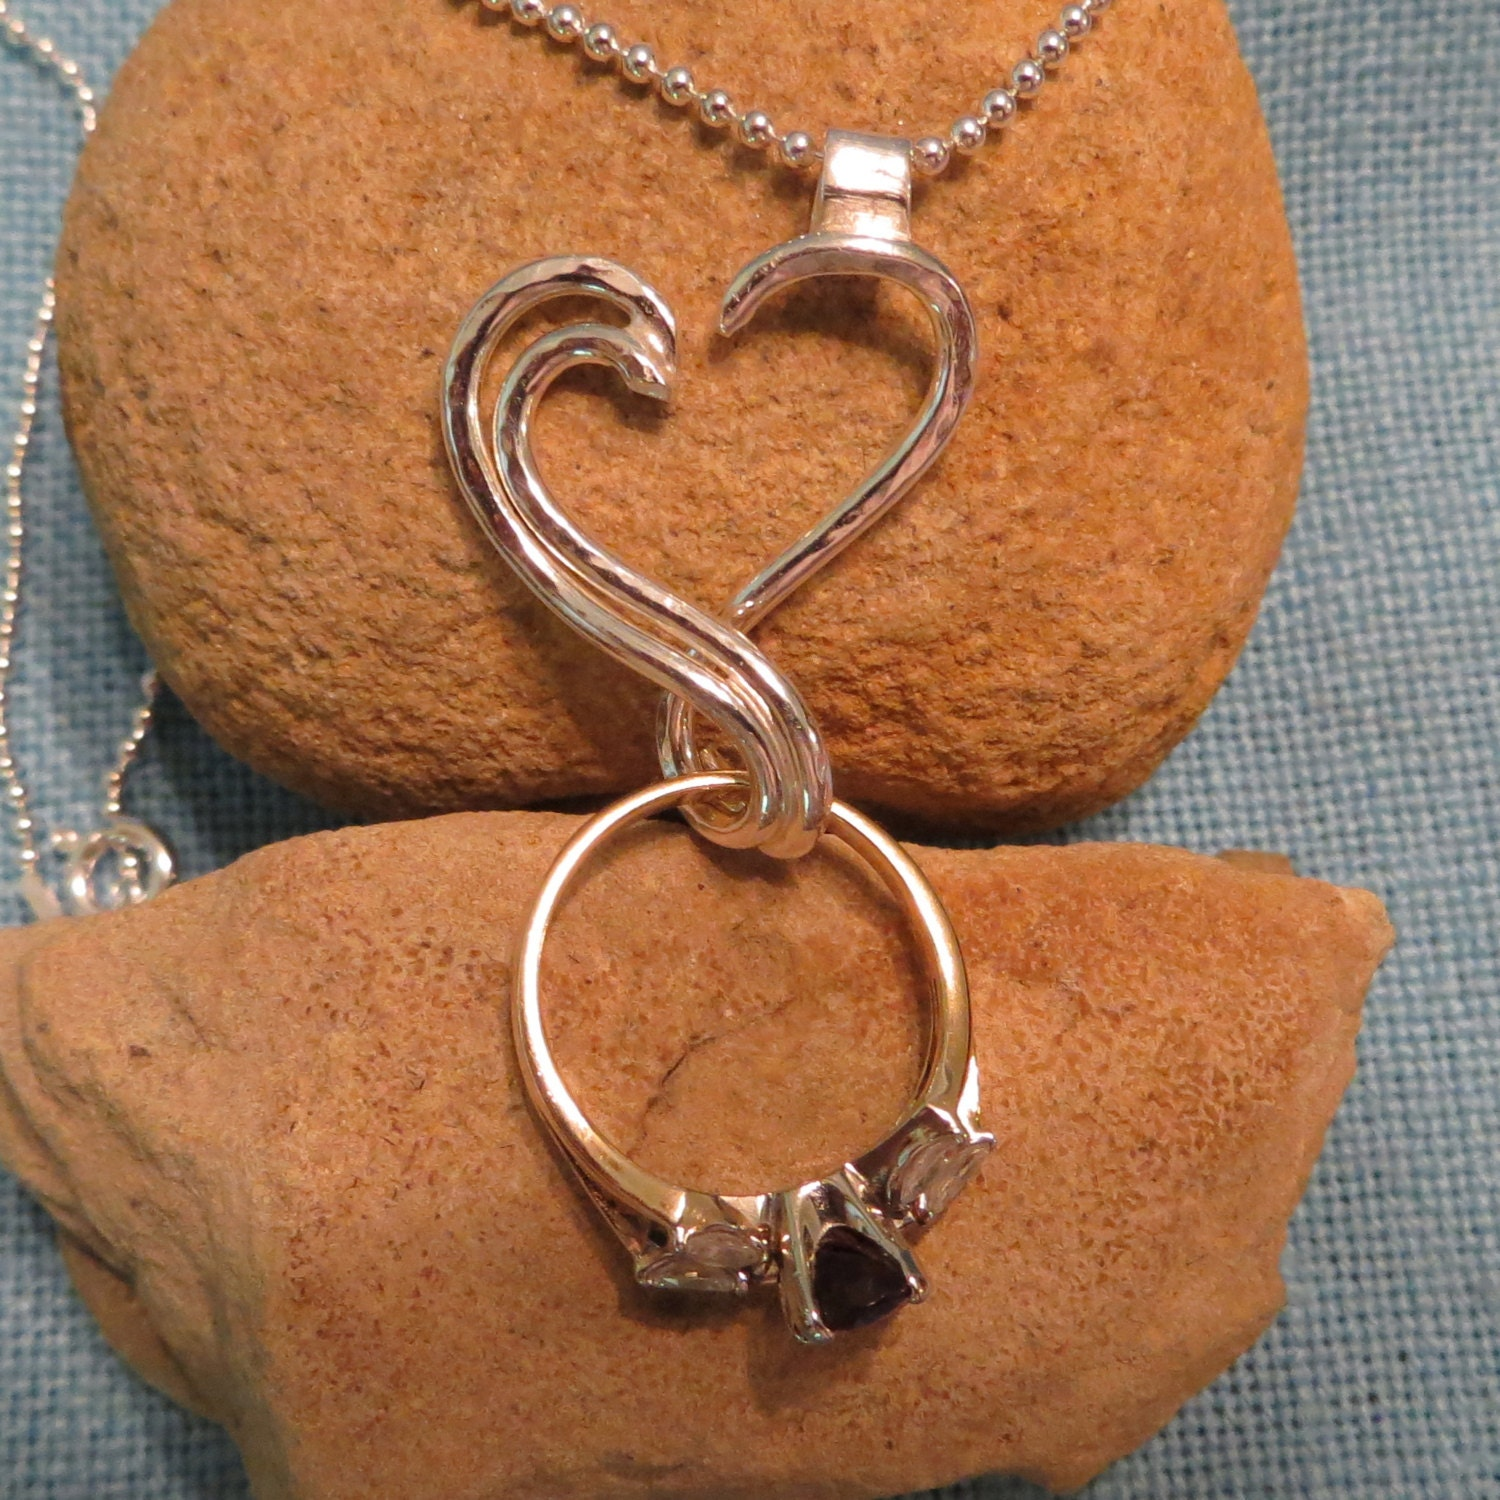 Engagement ring holder necklace silver open heart charm for Wedding ring necklace